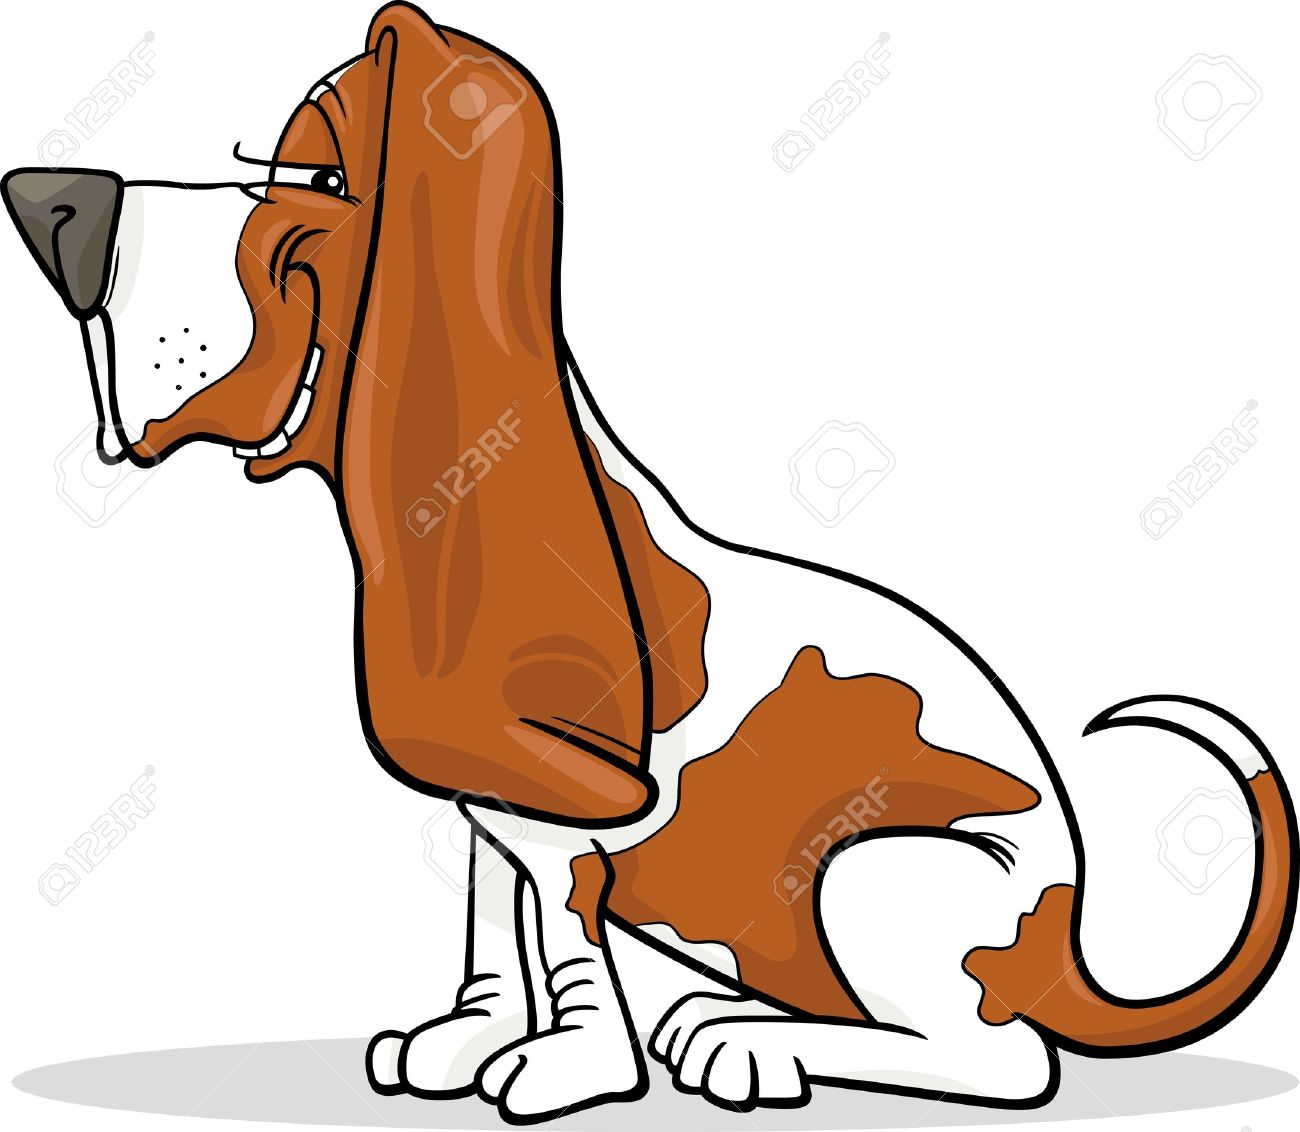 Basset clipart #2, Download drawings